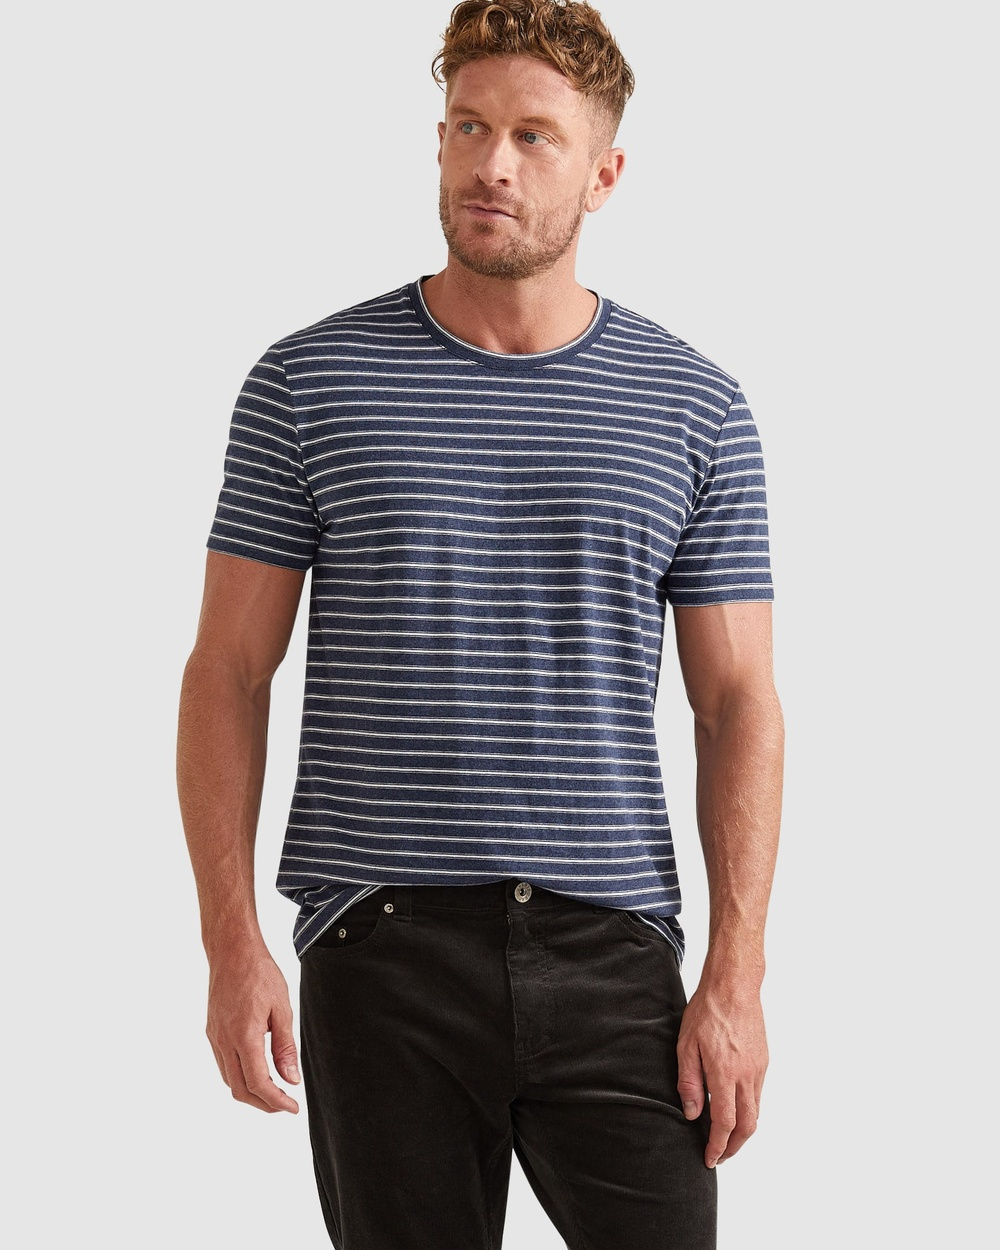 Sportscraft - Supersoft Stripe Tee - T-Shirts & Singlets (Navy Multi) Supersoft Stripe Tee